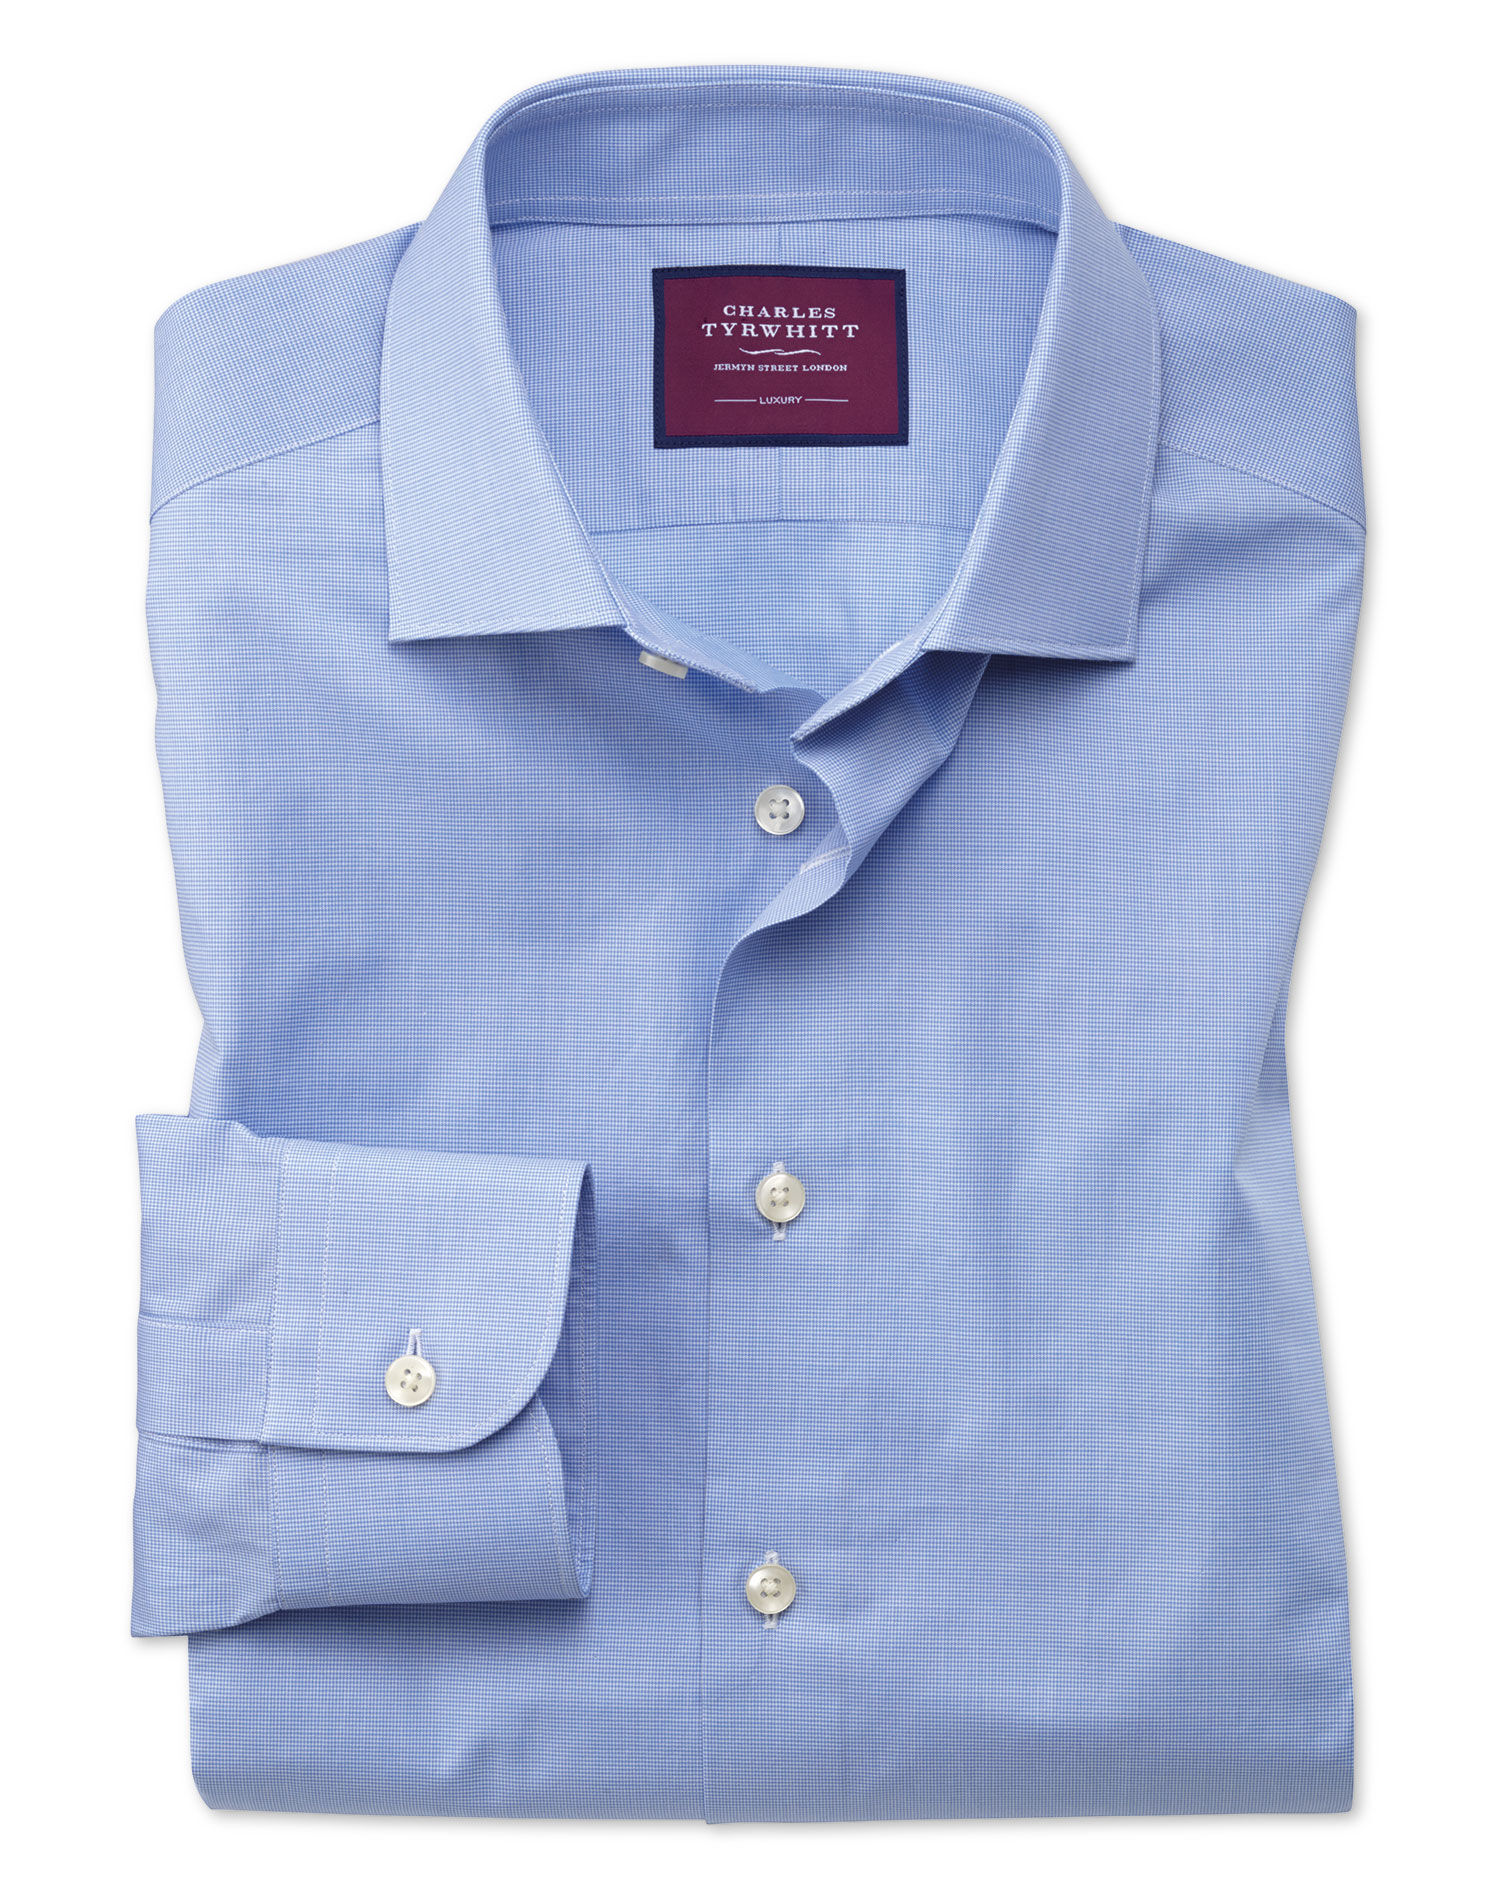 Classic Fit Blue Small Puppytooth Luxury Cotton Formal Shirt Single Cuff Size 18/35 by Charles Tyrwh